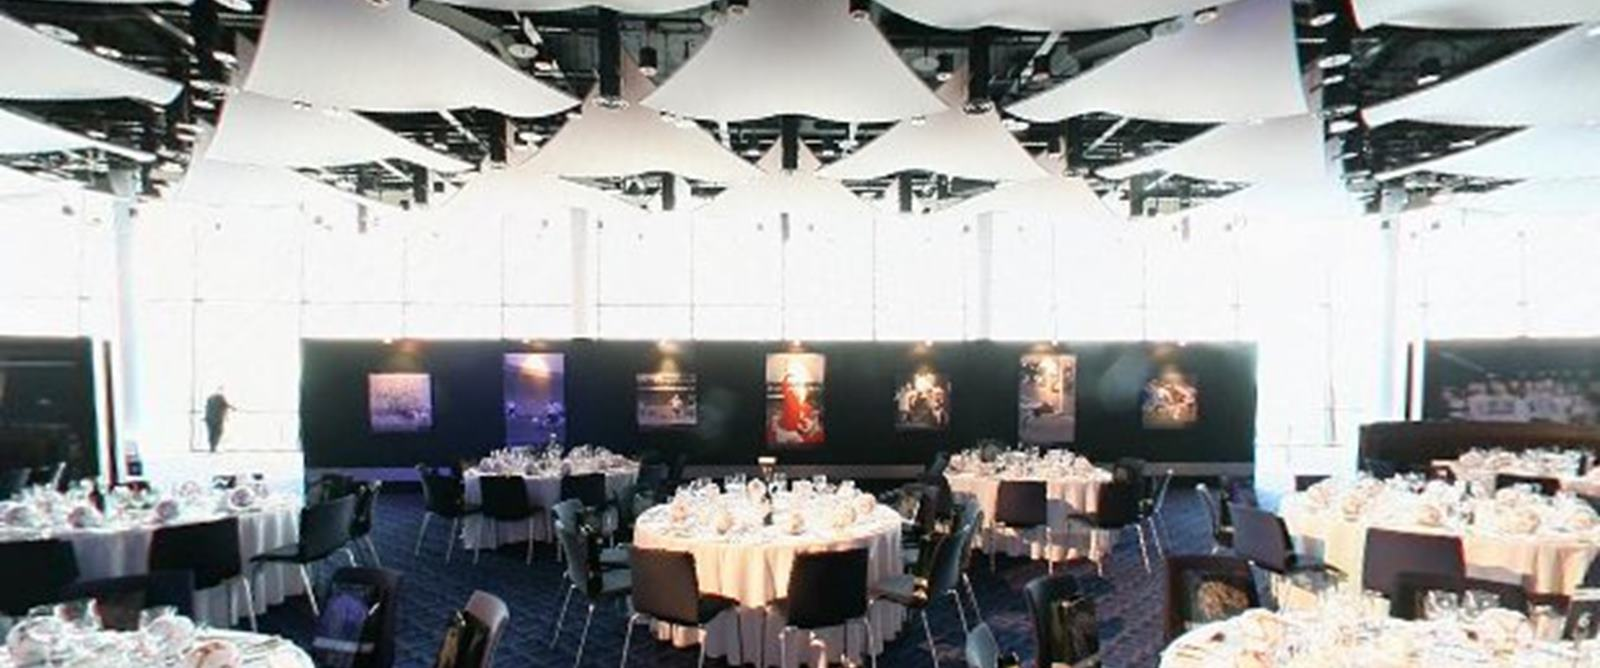 Photo of The Great Hall at Wembley Stadium